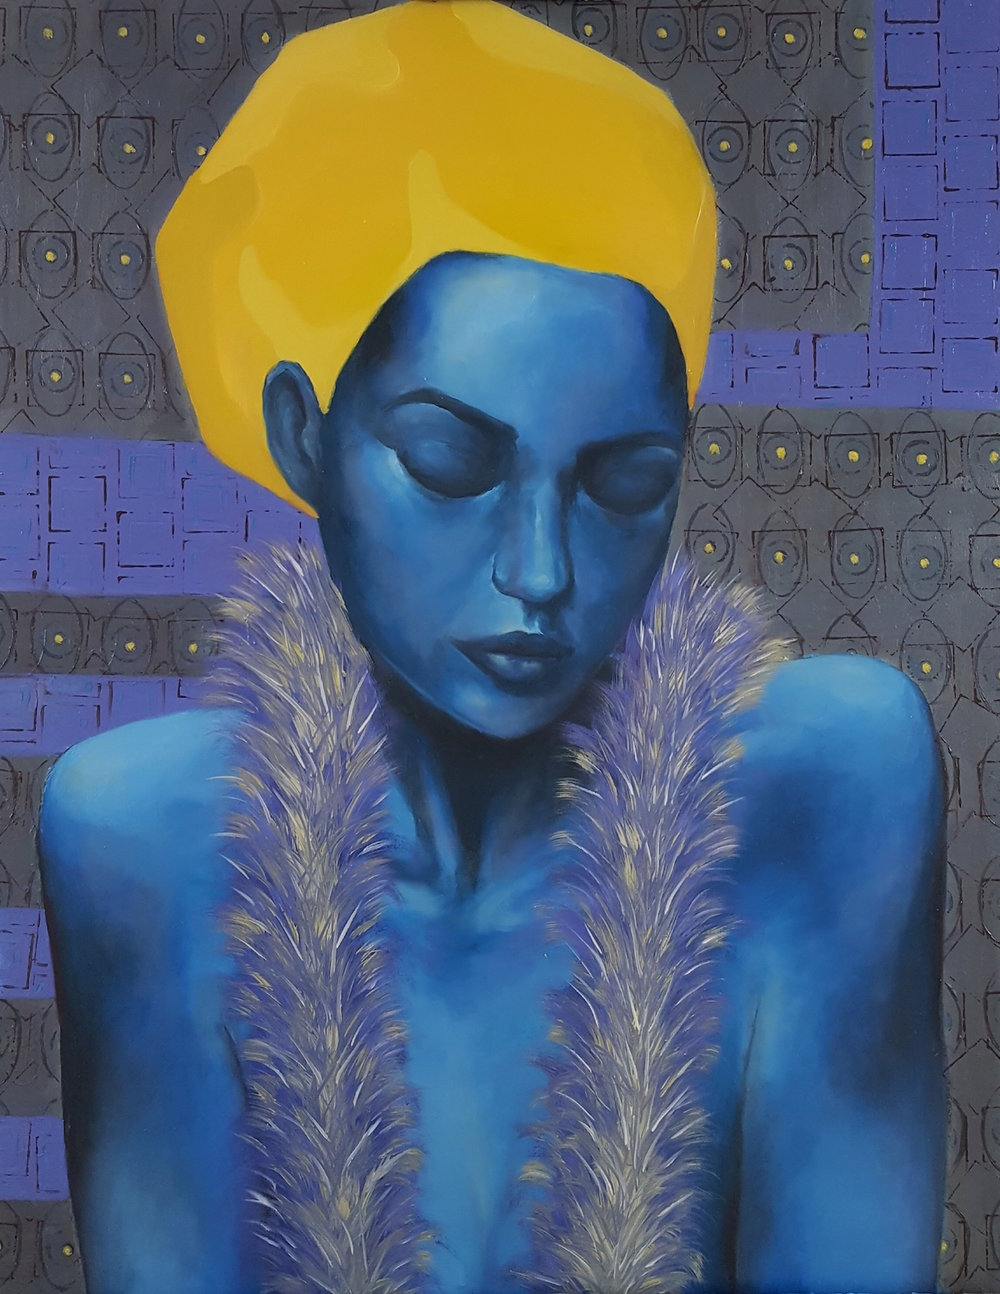 Blue woman 2. Pastels, Acrylics & oils on canvas. 59.5 x 76cm.jpg